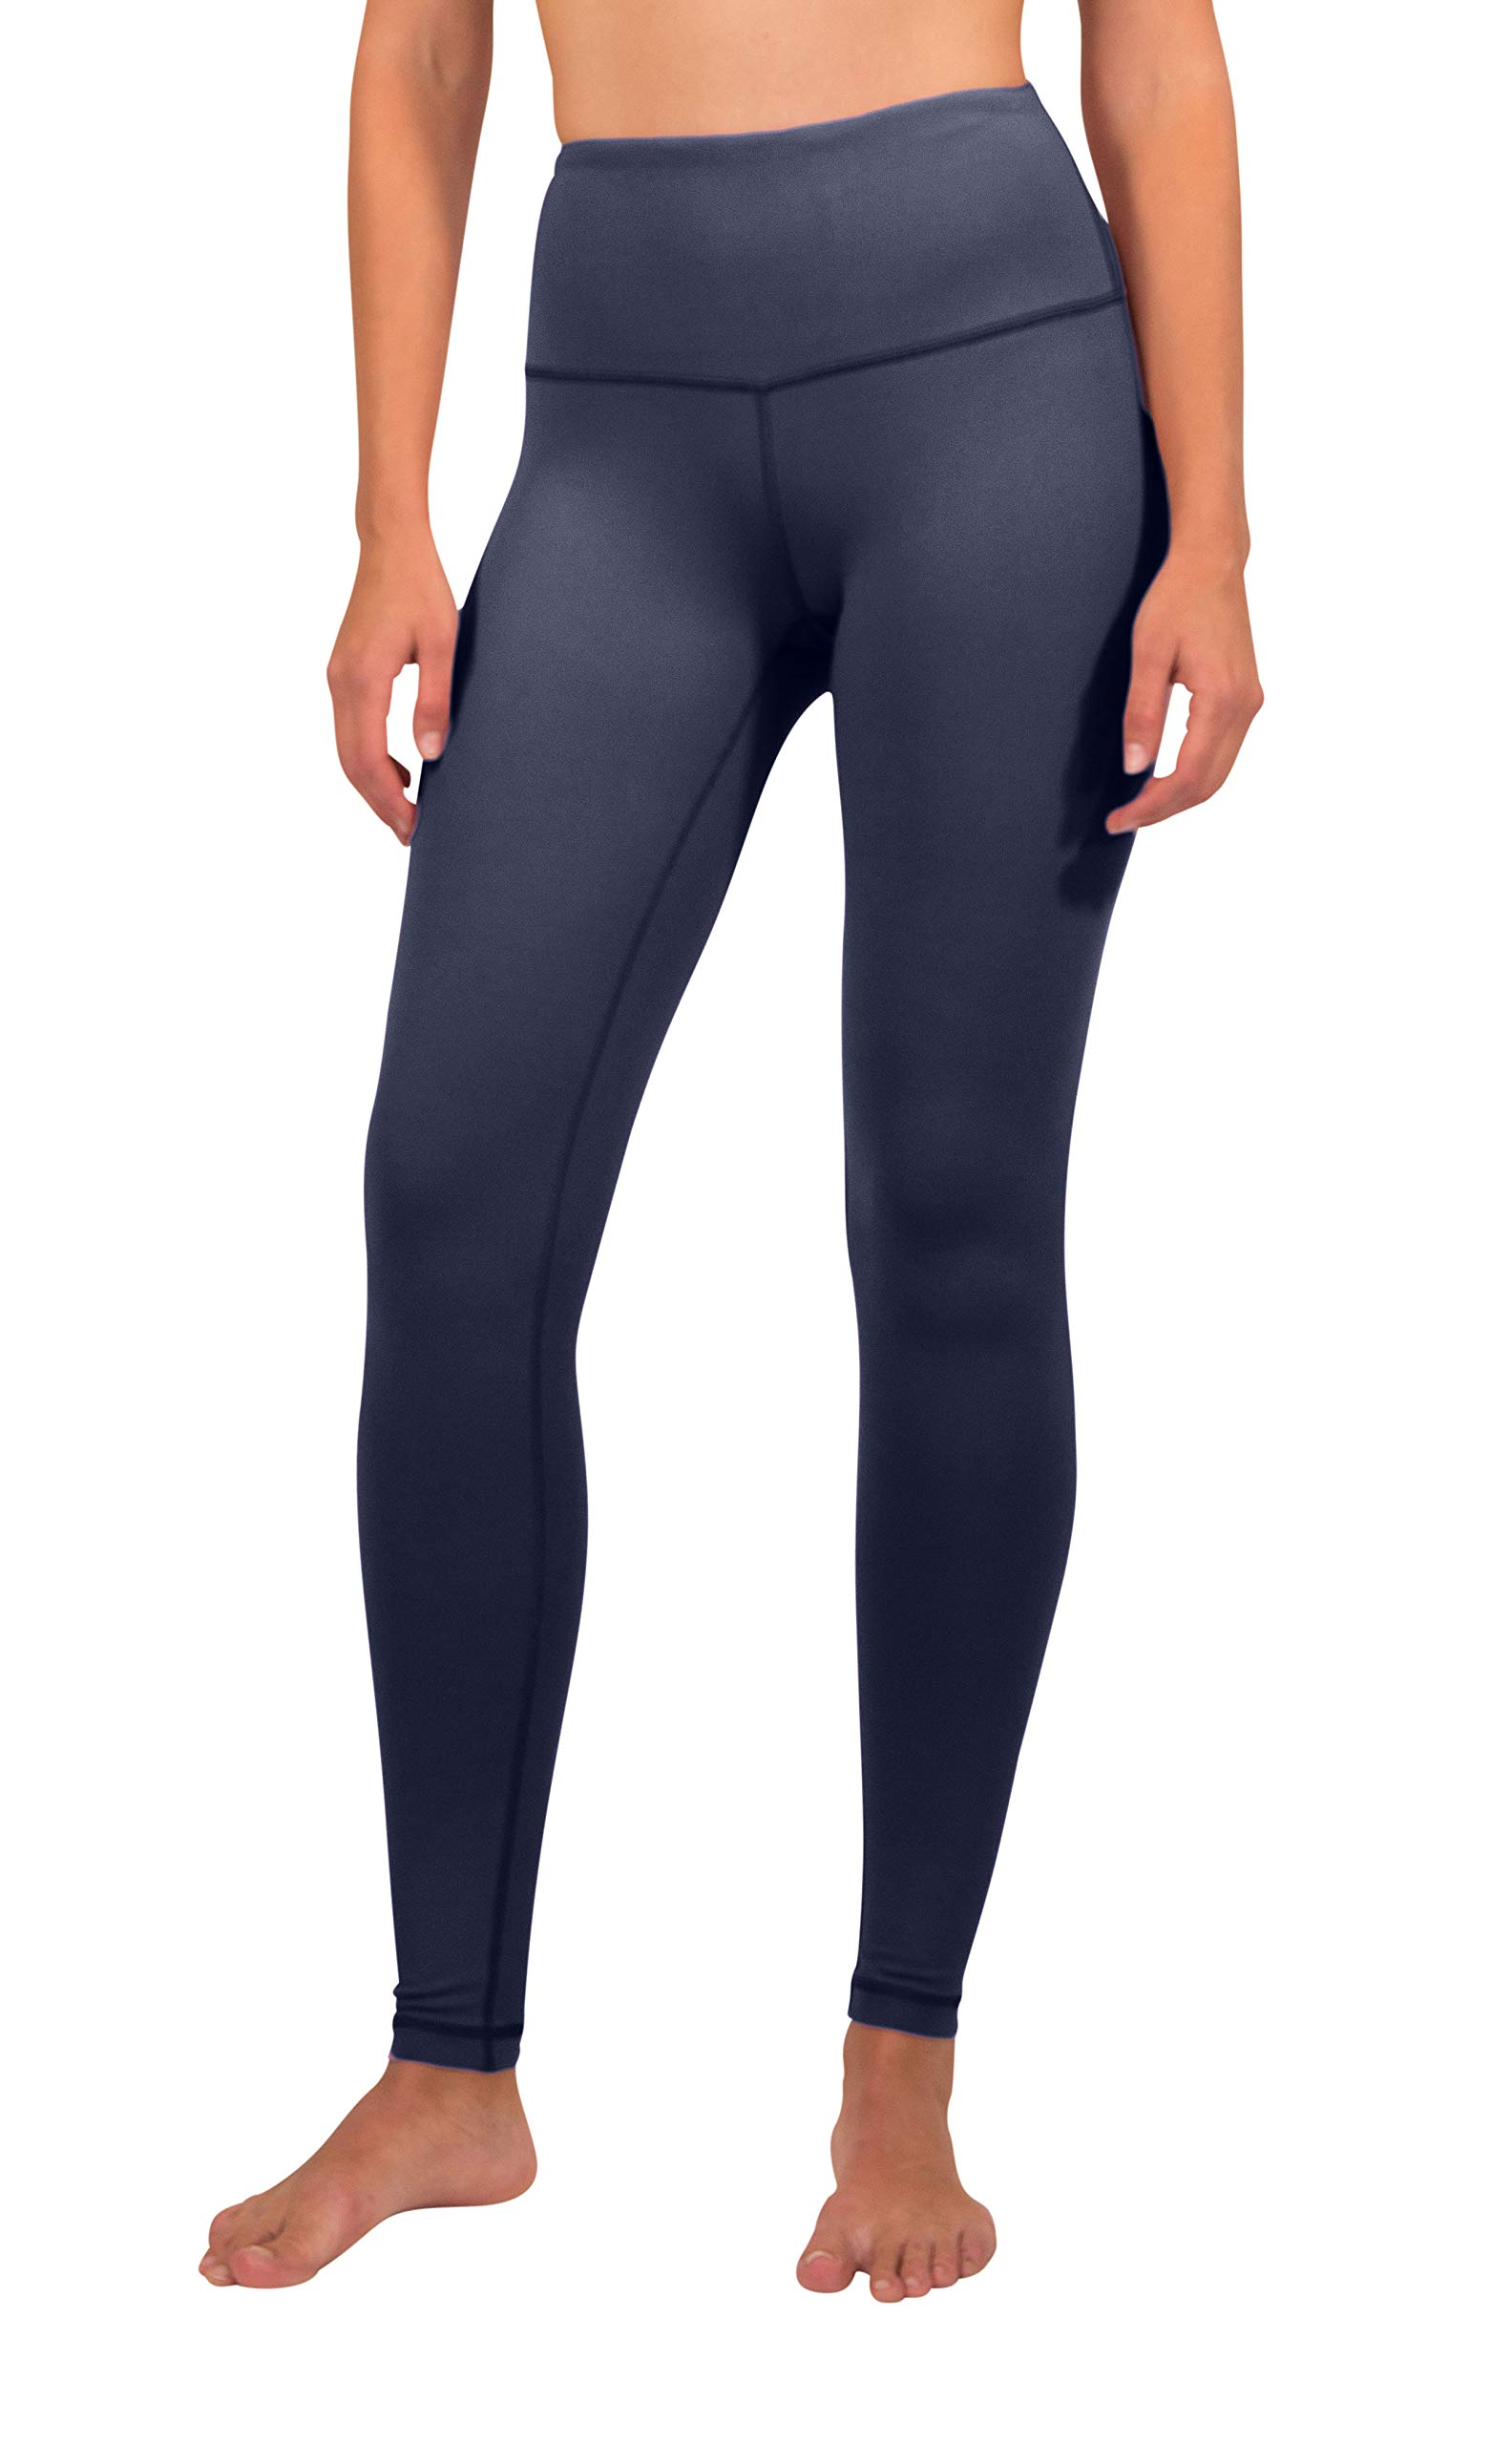 90 Degree By Reflex - High Waist Power Flex Legging - Tummy Control - Moonlit Ocean - XS by 90 Degree By Reflex